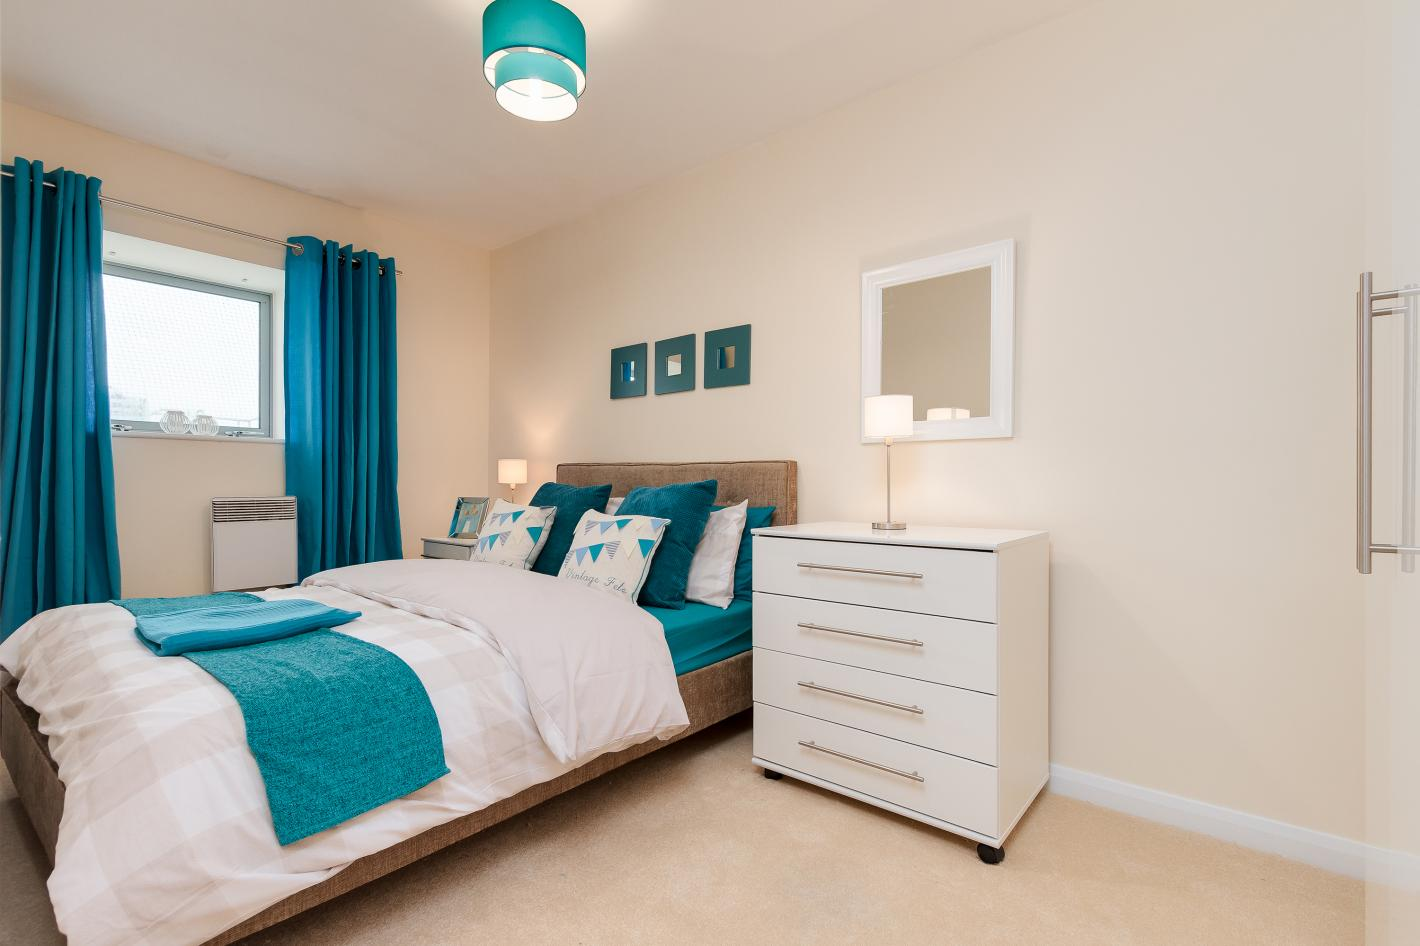 white bedroom with white chest of draws, white bedding and turquoise detailing